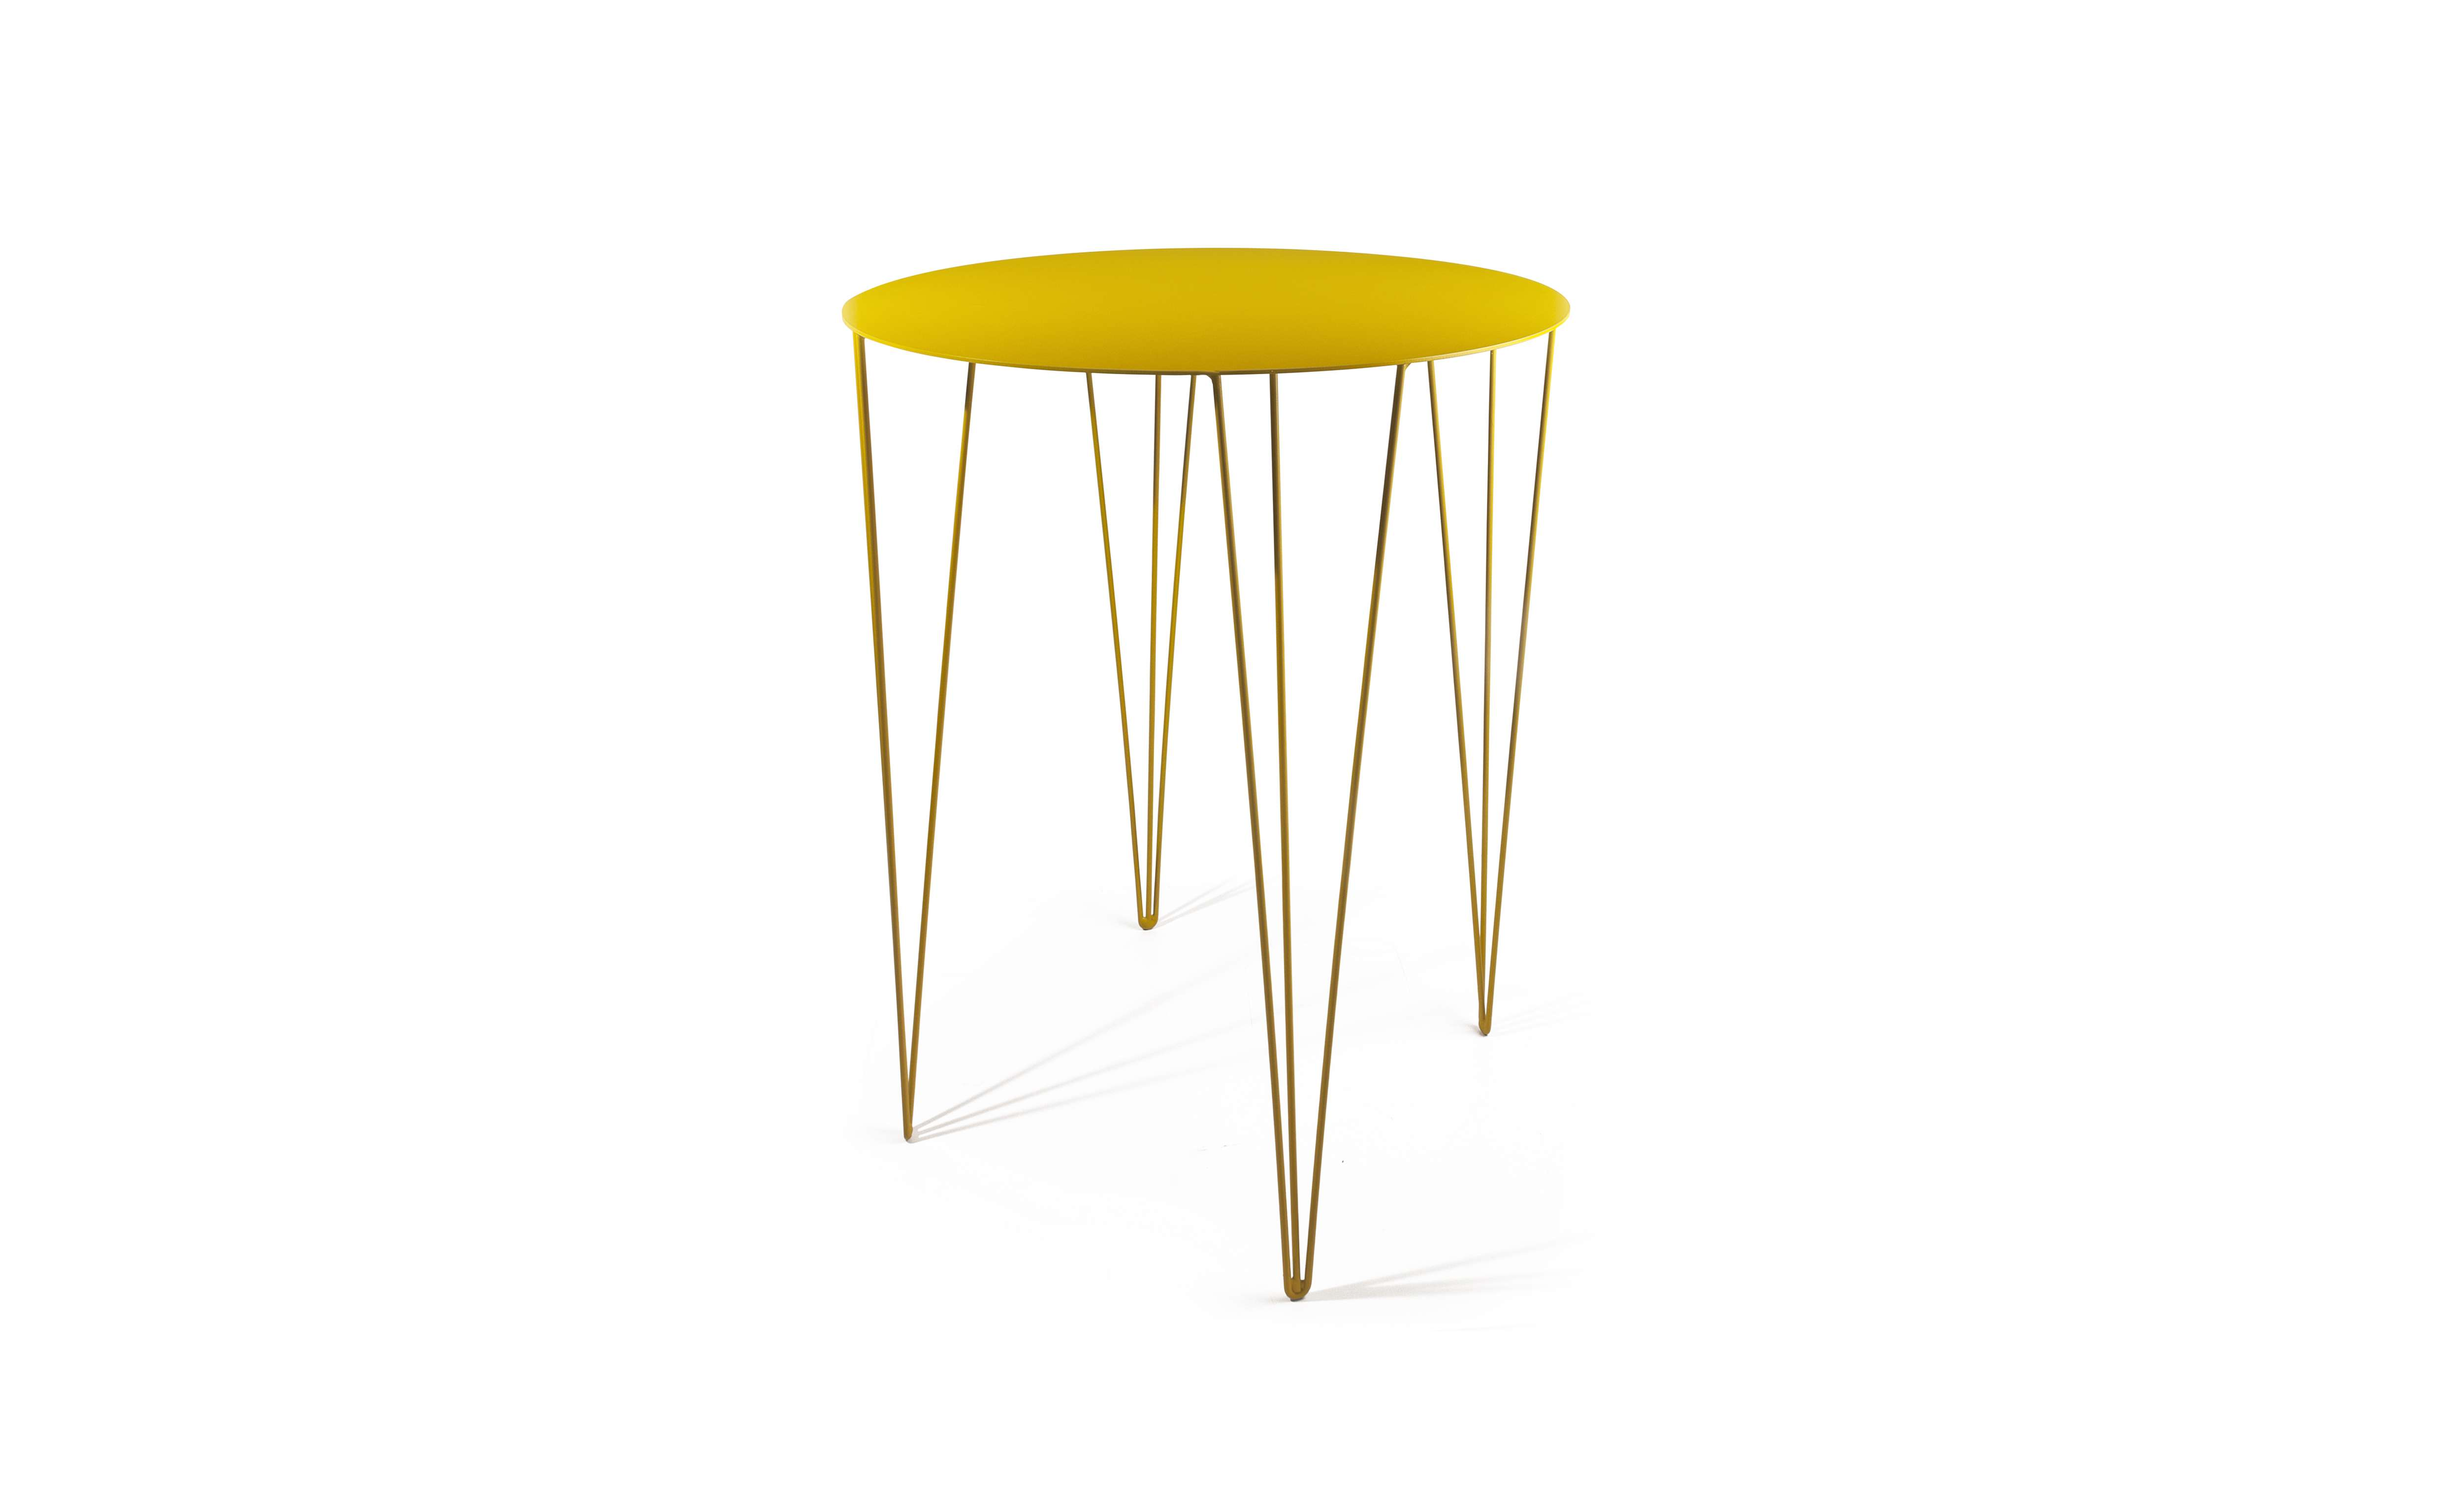 Chele Rounded Bistro Table in Honey Yellow